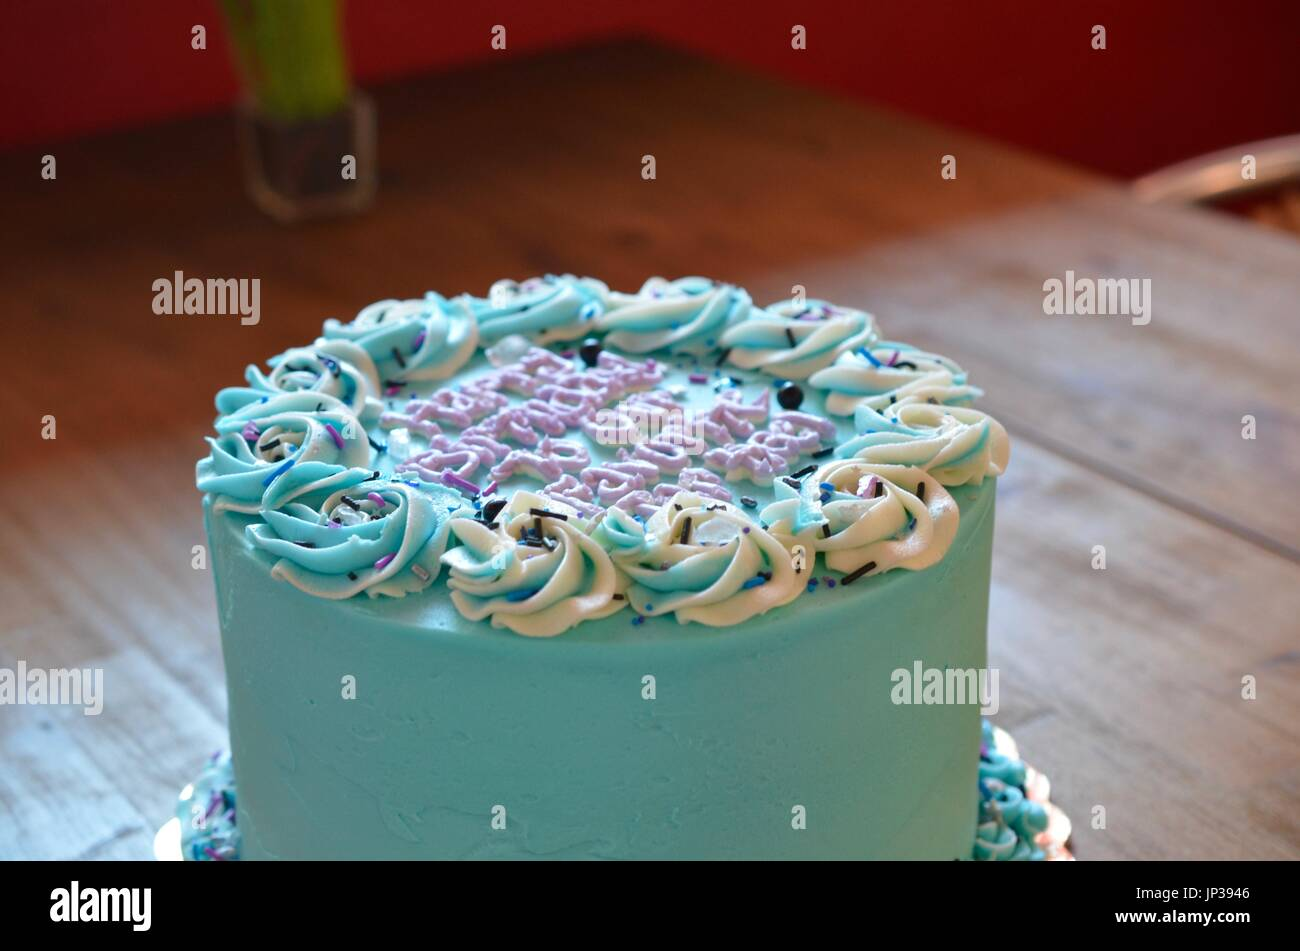 UNC birthday cake on wooden tabletop - Stock Image